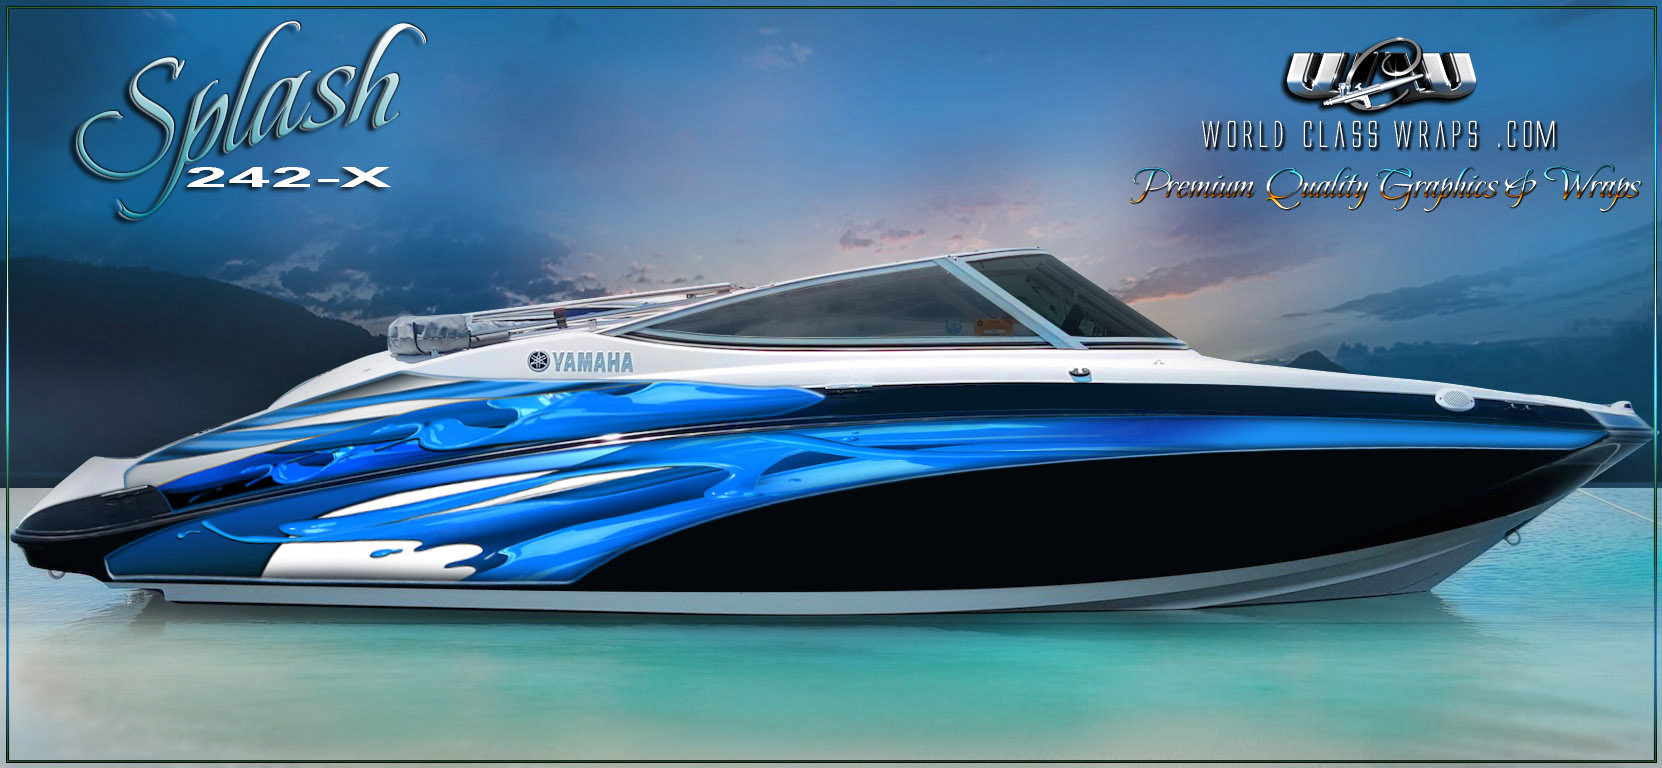 Yamaha splash boat graphics for Yamaha boat decals graphics